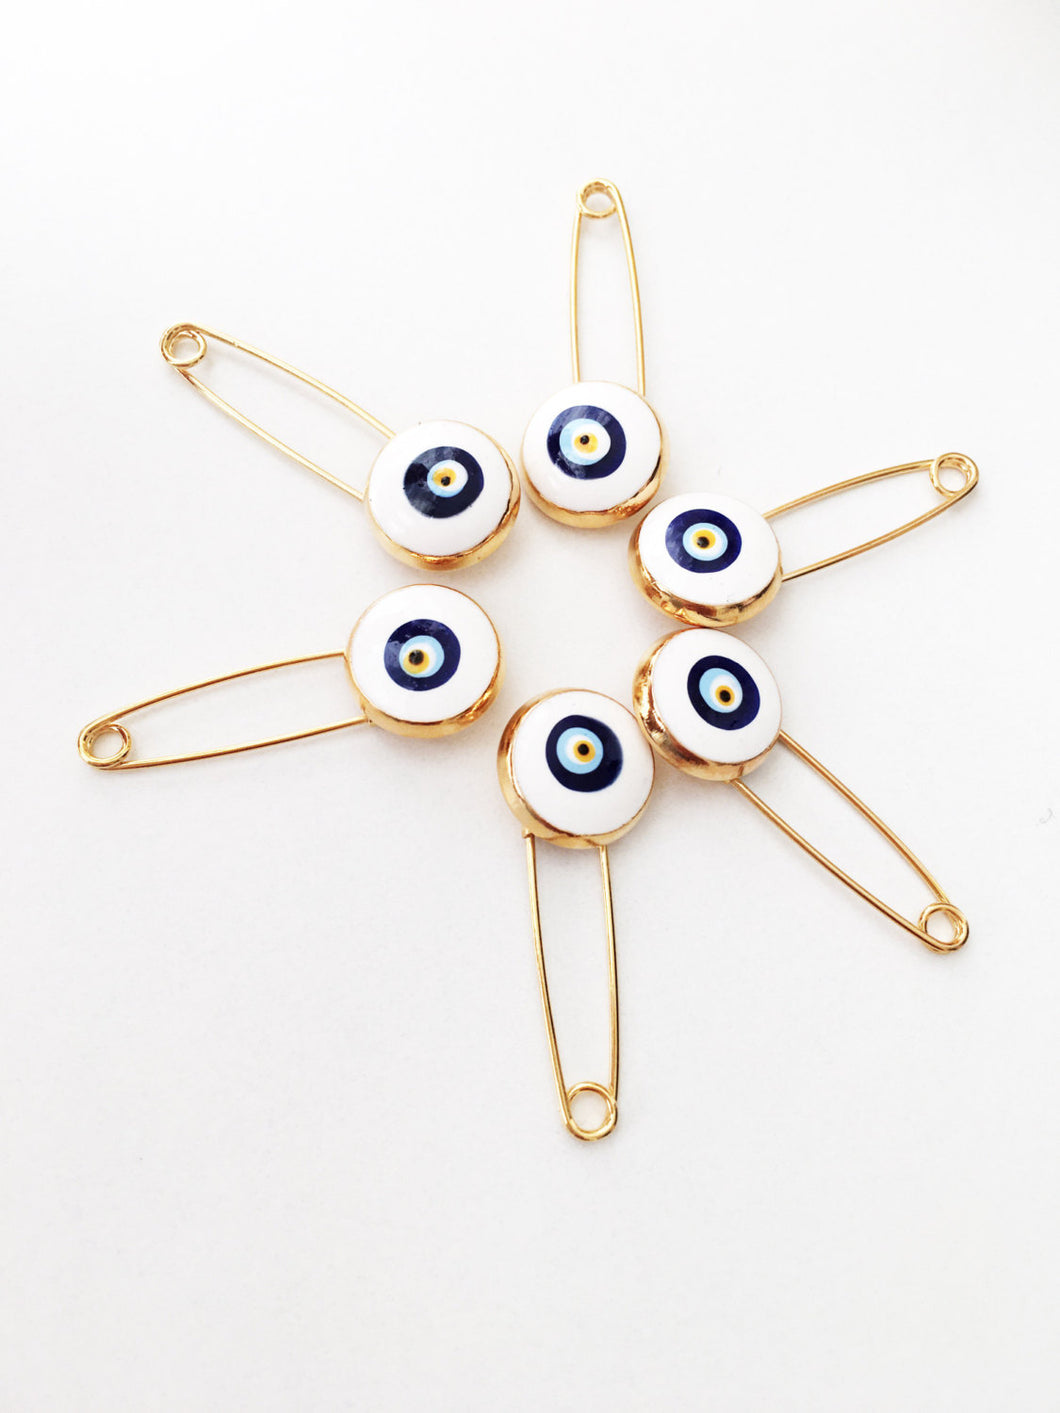 5 pcs evil eye safety pin, white lucky evil eye pin, protection for baby, gold plated evil eye pins - Evileyefavor